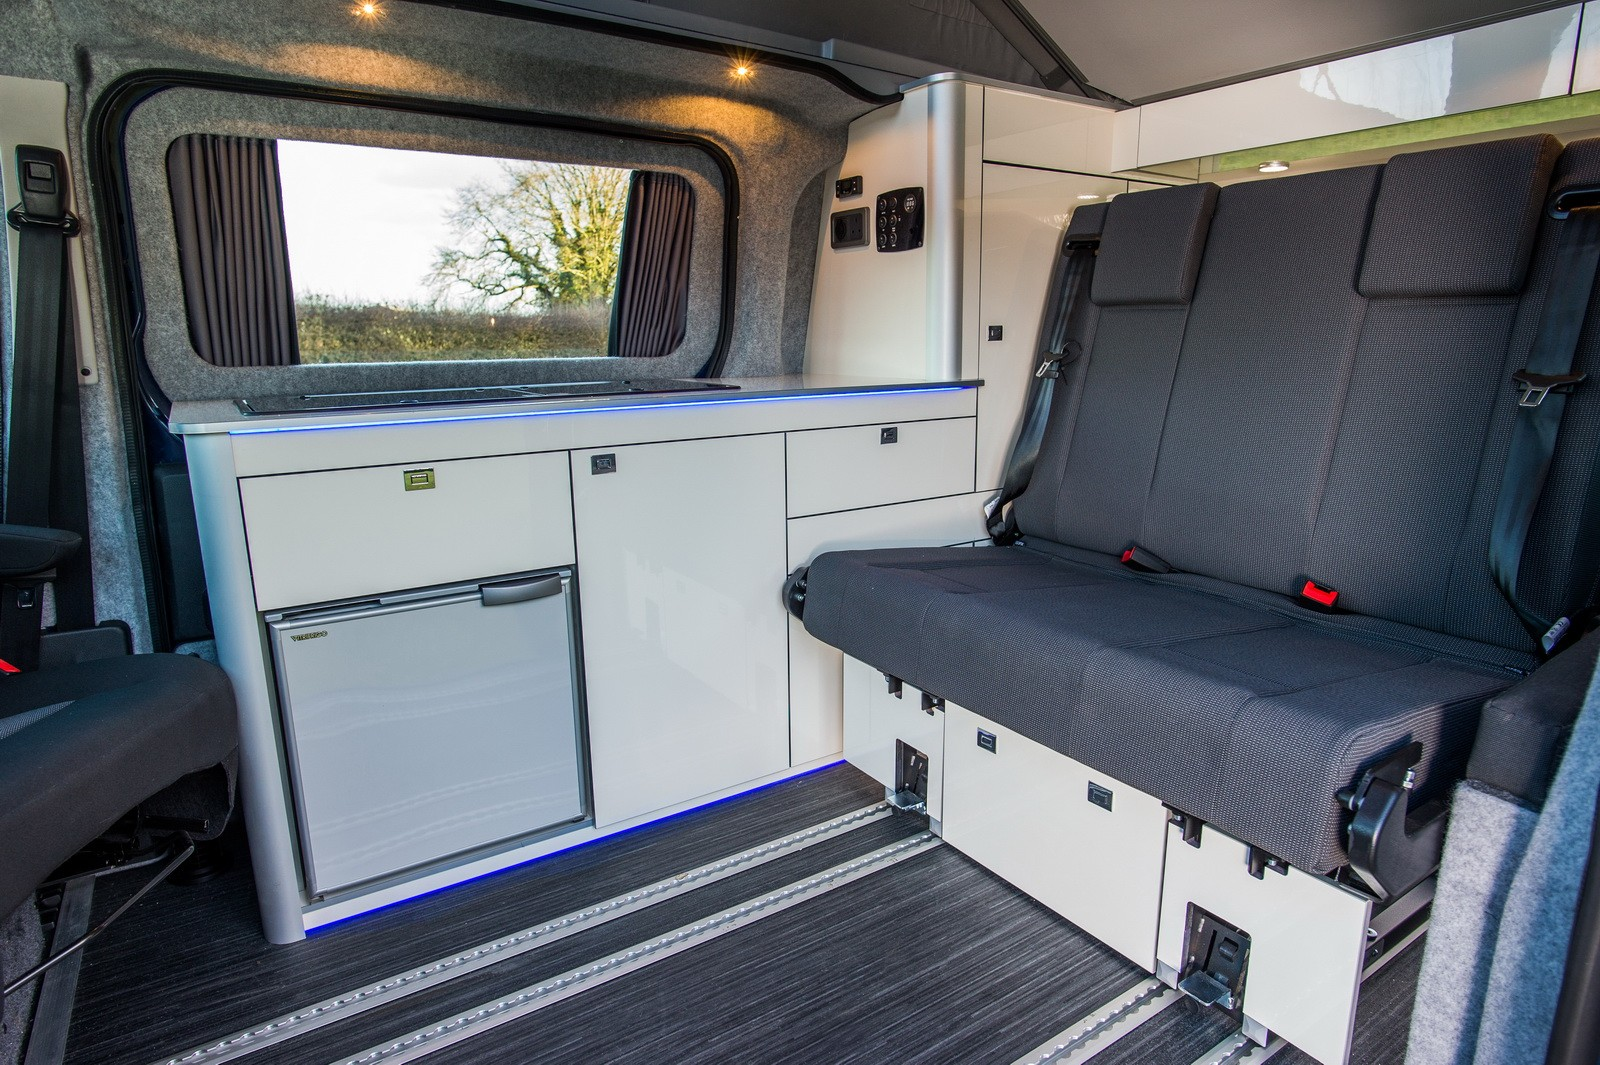 Toyota Proace Lerina Camper Van Looks Set To Rival Vw